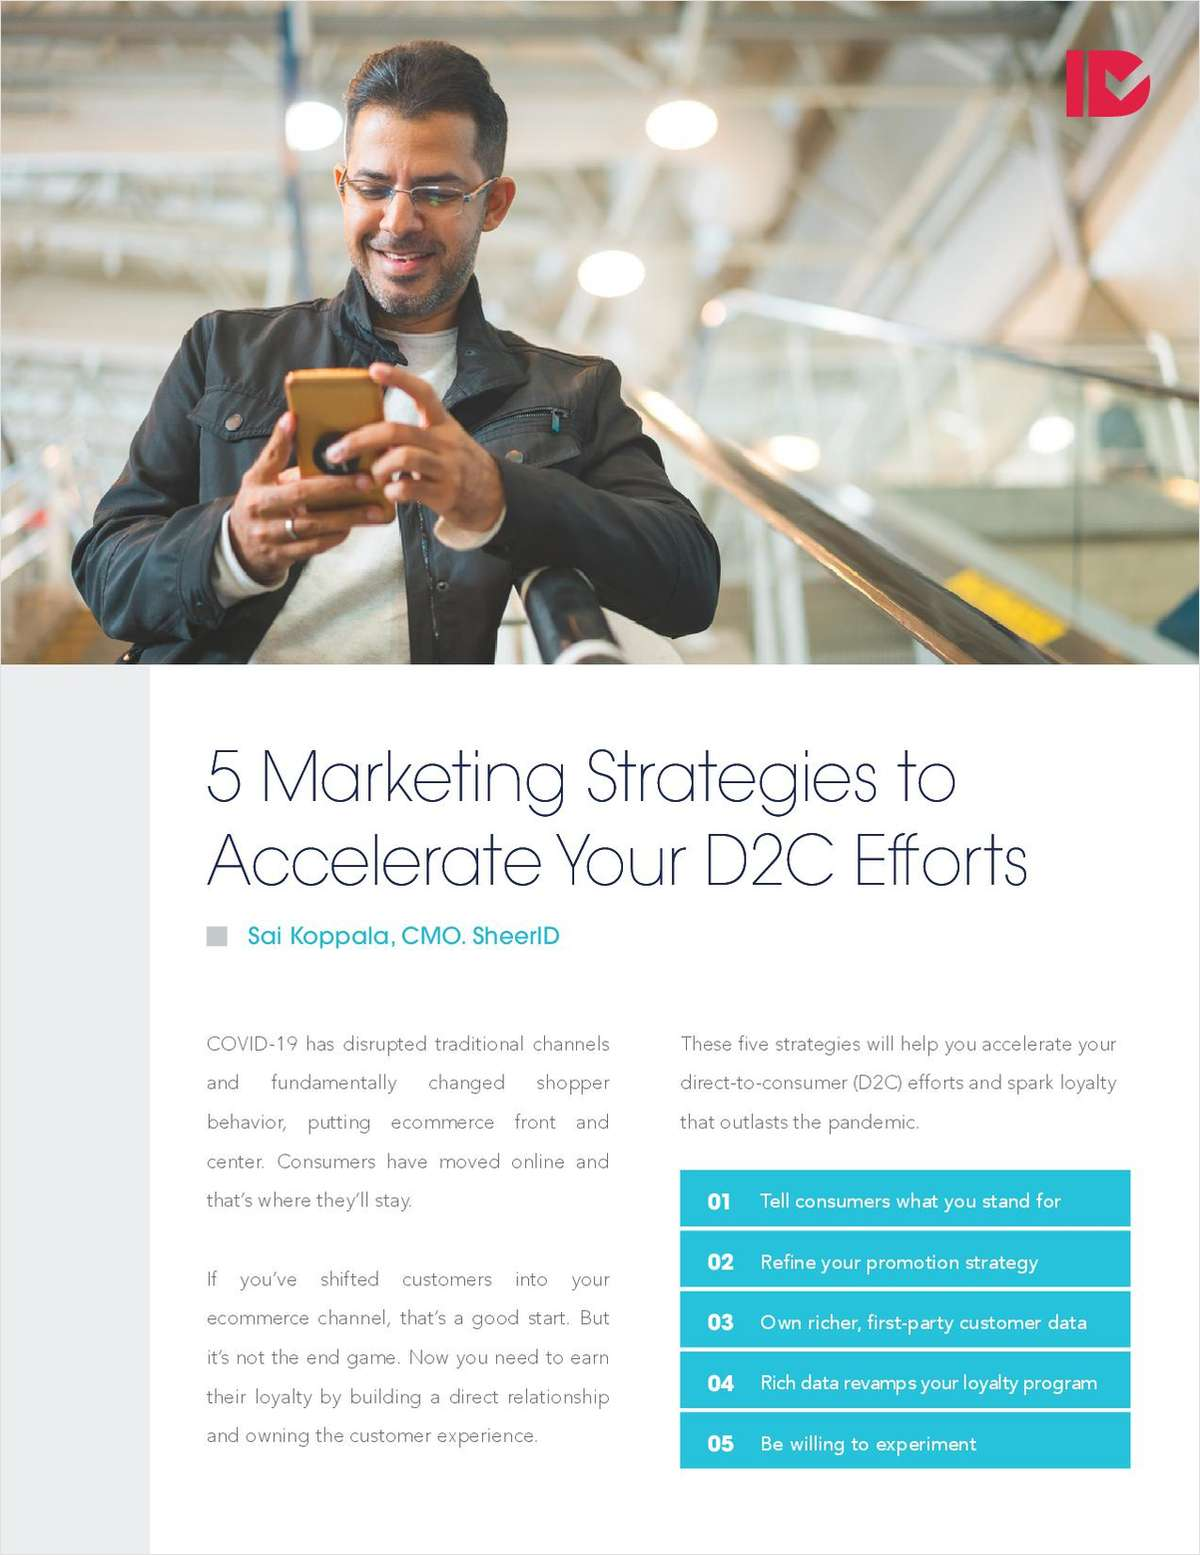 5 Marketing Strategies to Accelerate Your D2C Efforts